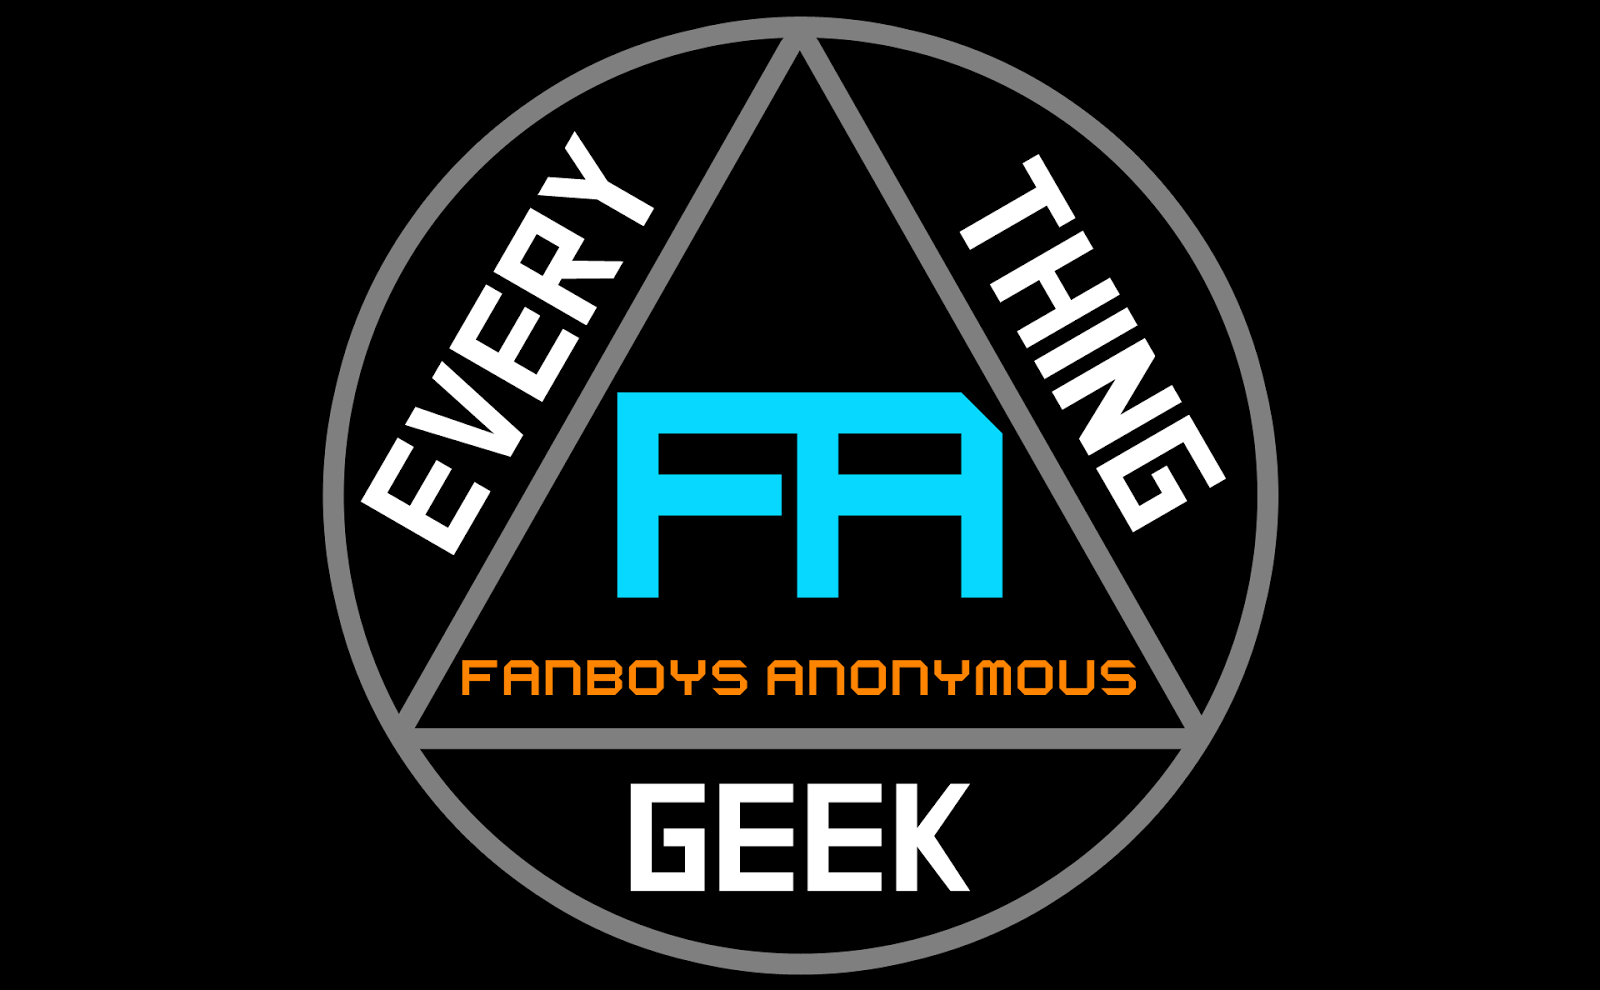 G4 Website Geeky Fanboys Anonymous Nerds Comic-Con